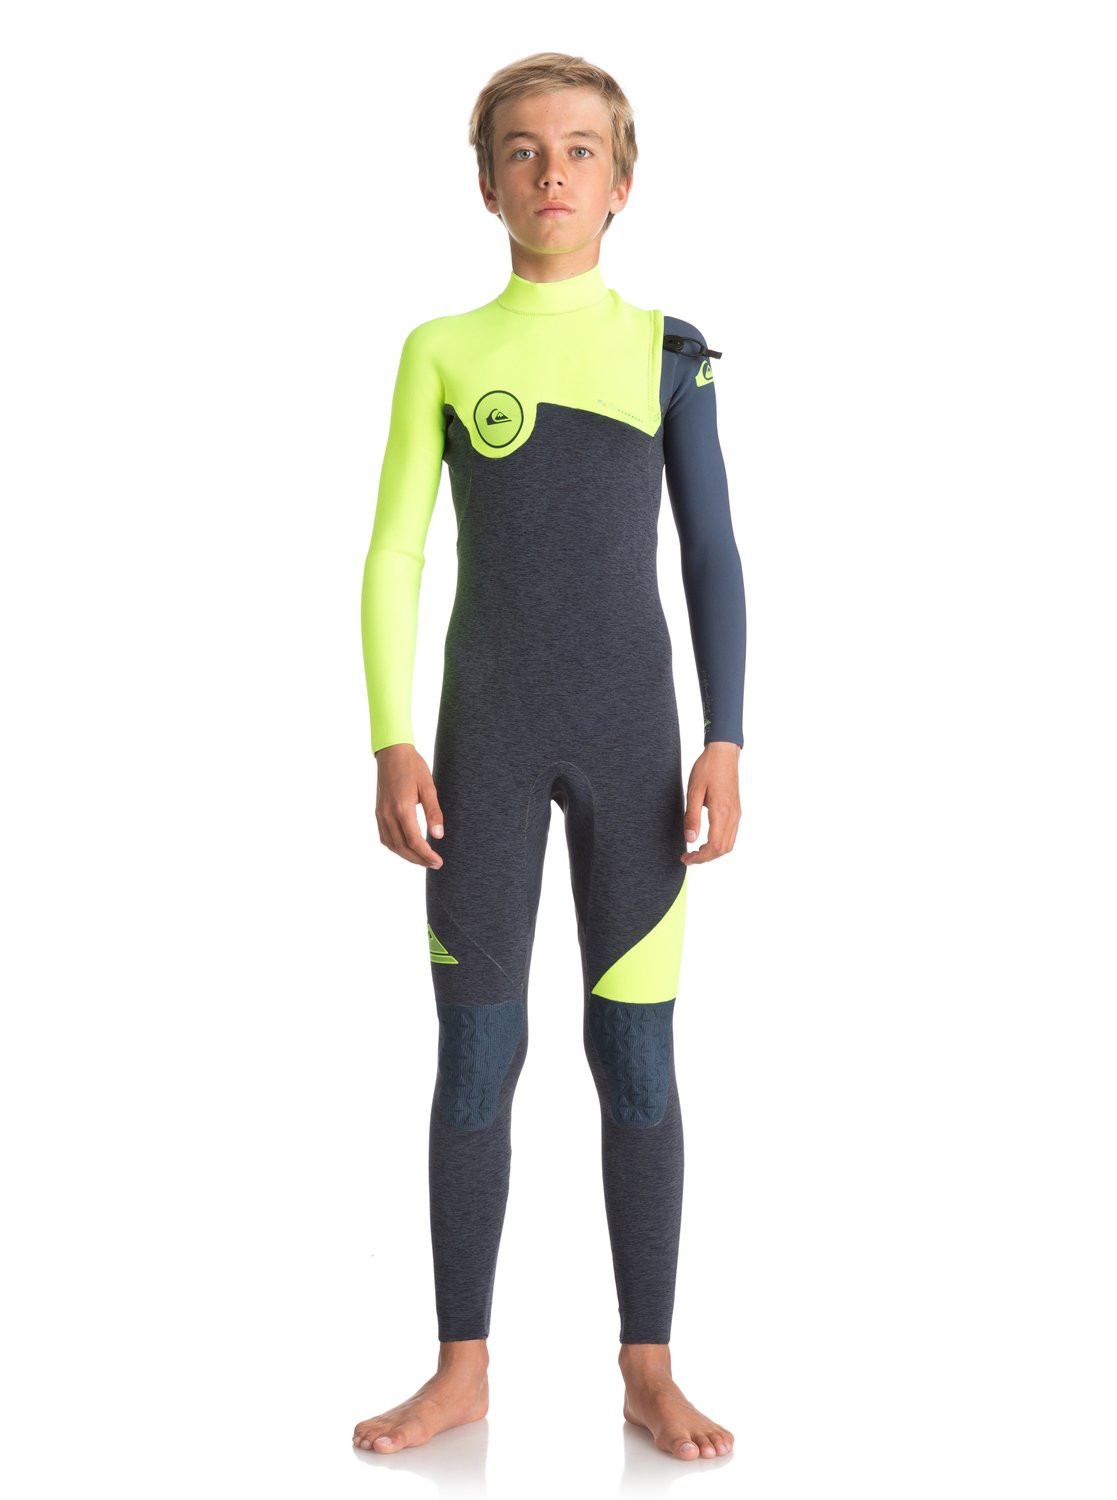 QUIKSILVER HIGHLINE SERIES 3/2 WETSUIT